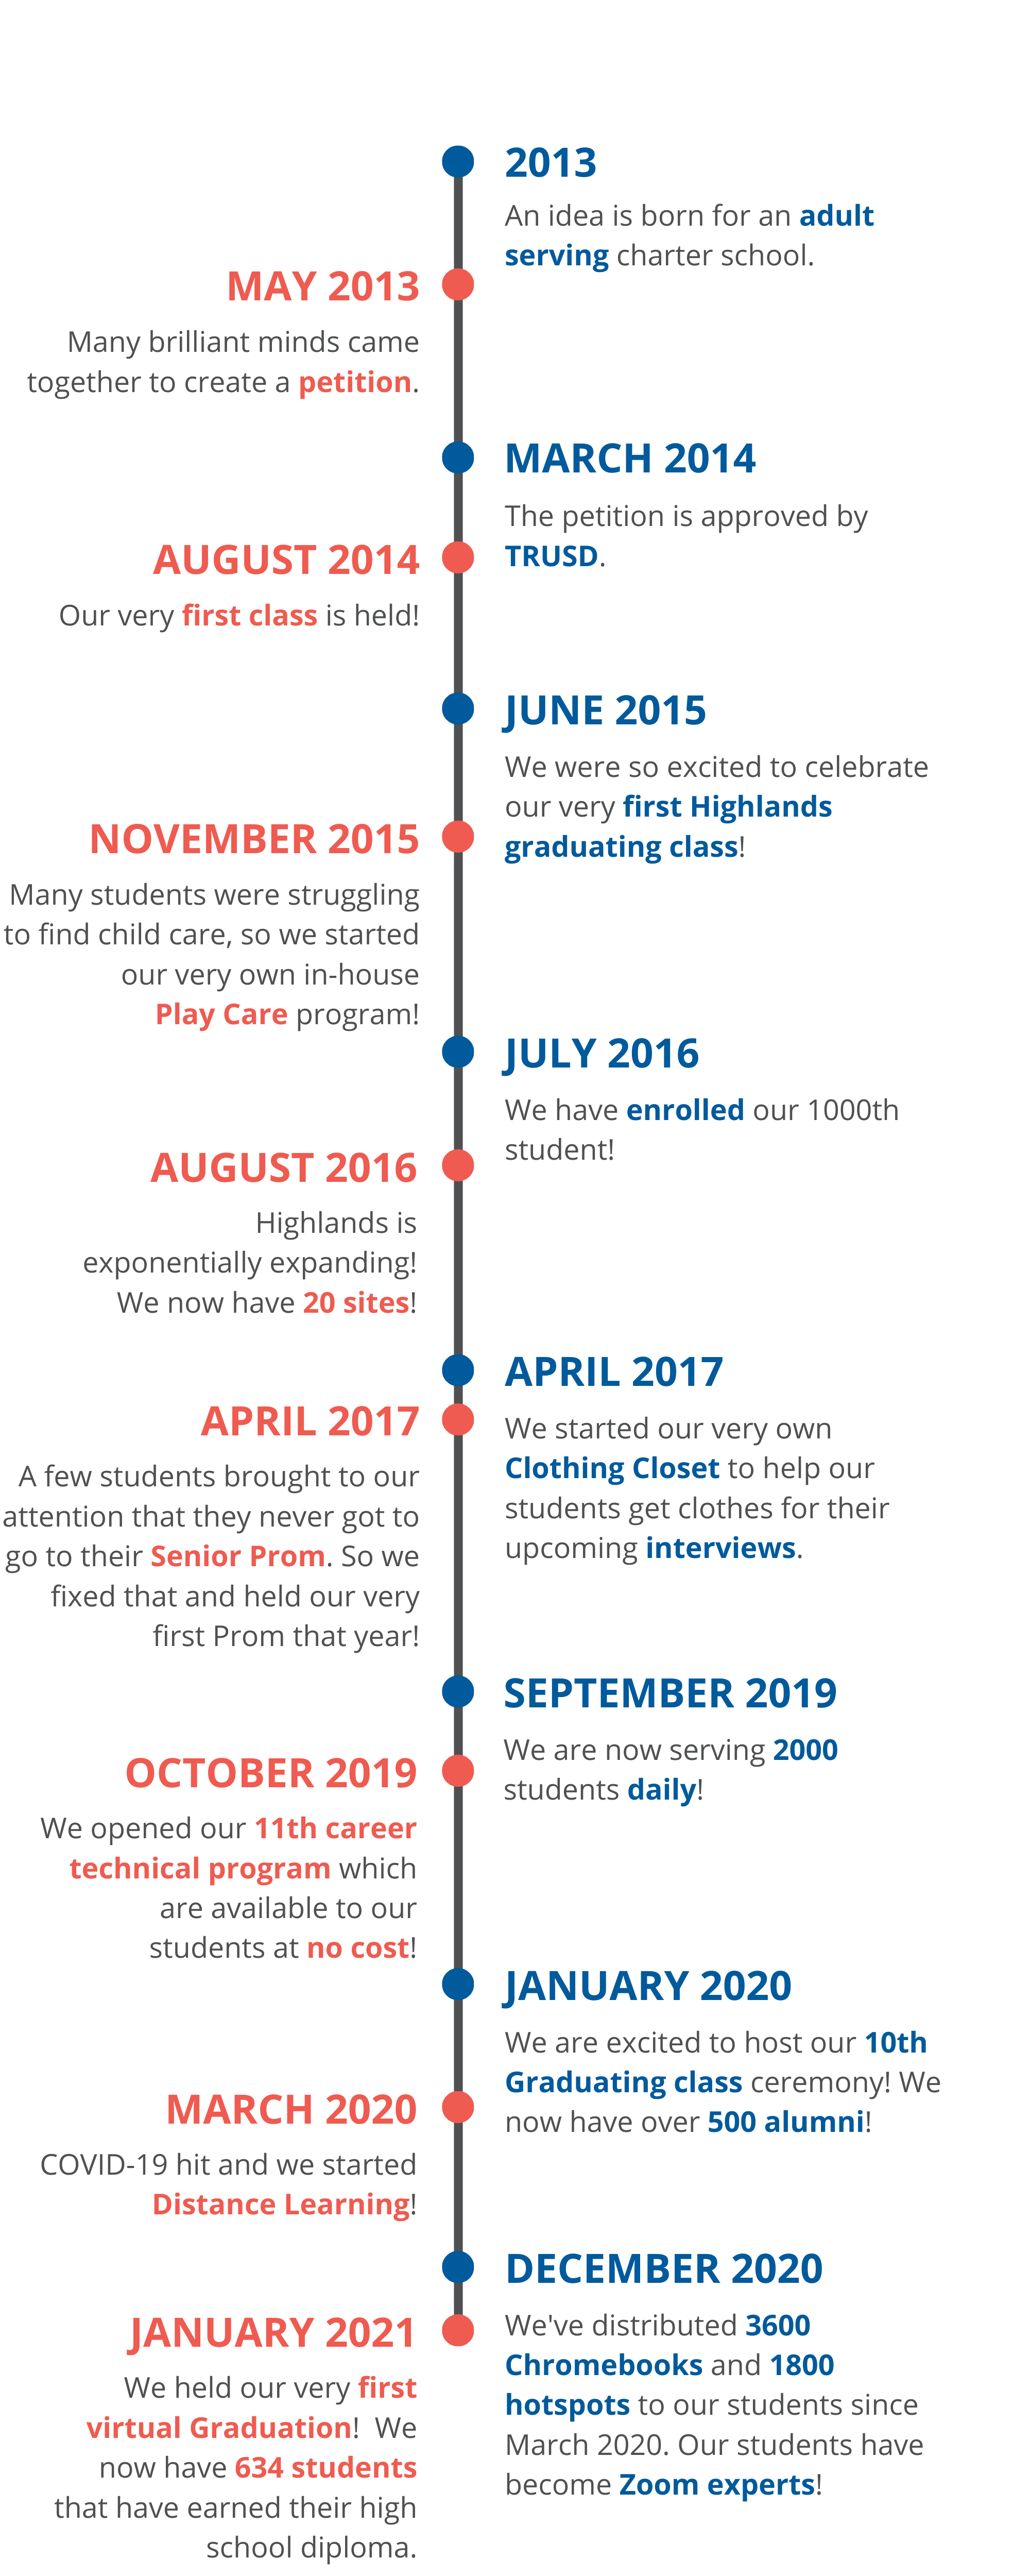 Timeline of Highlands Development